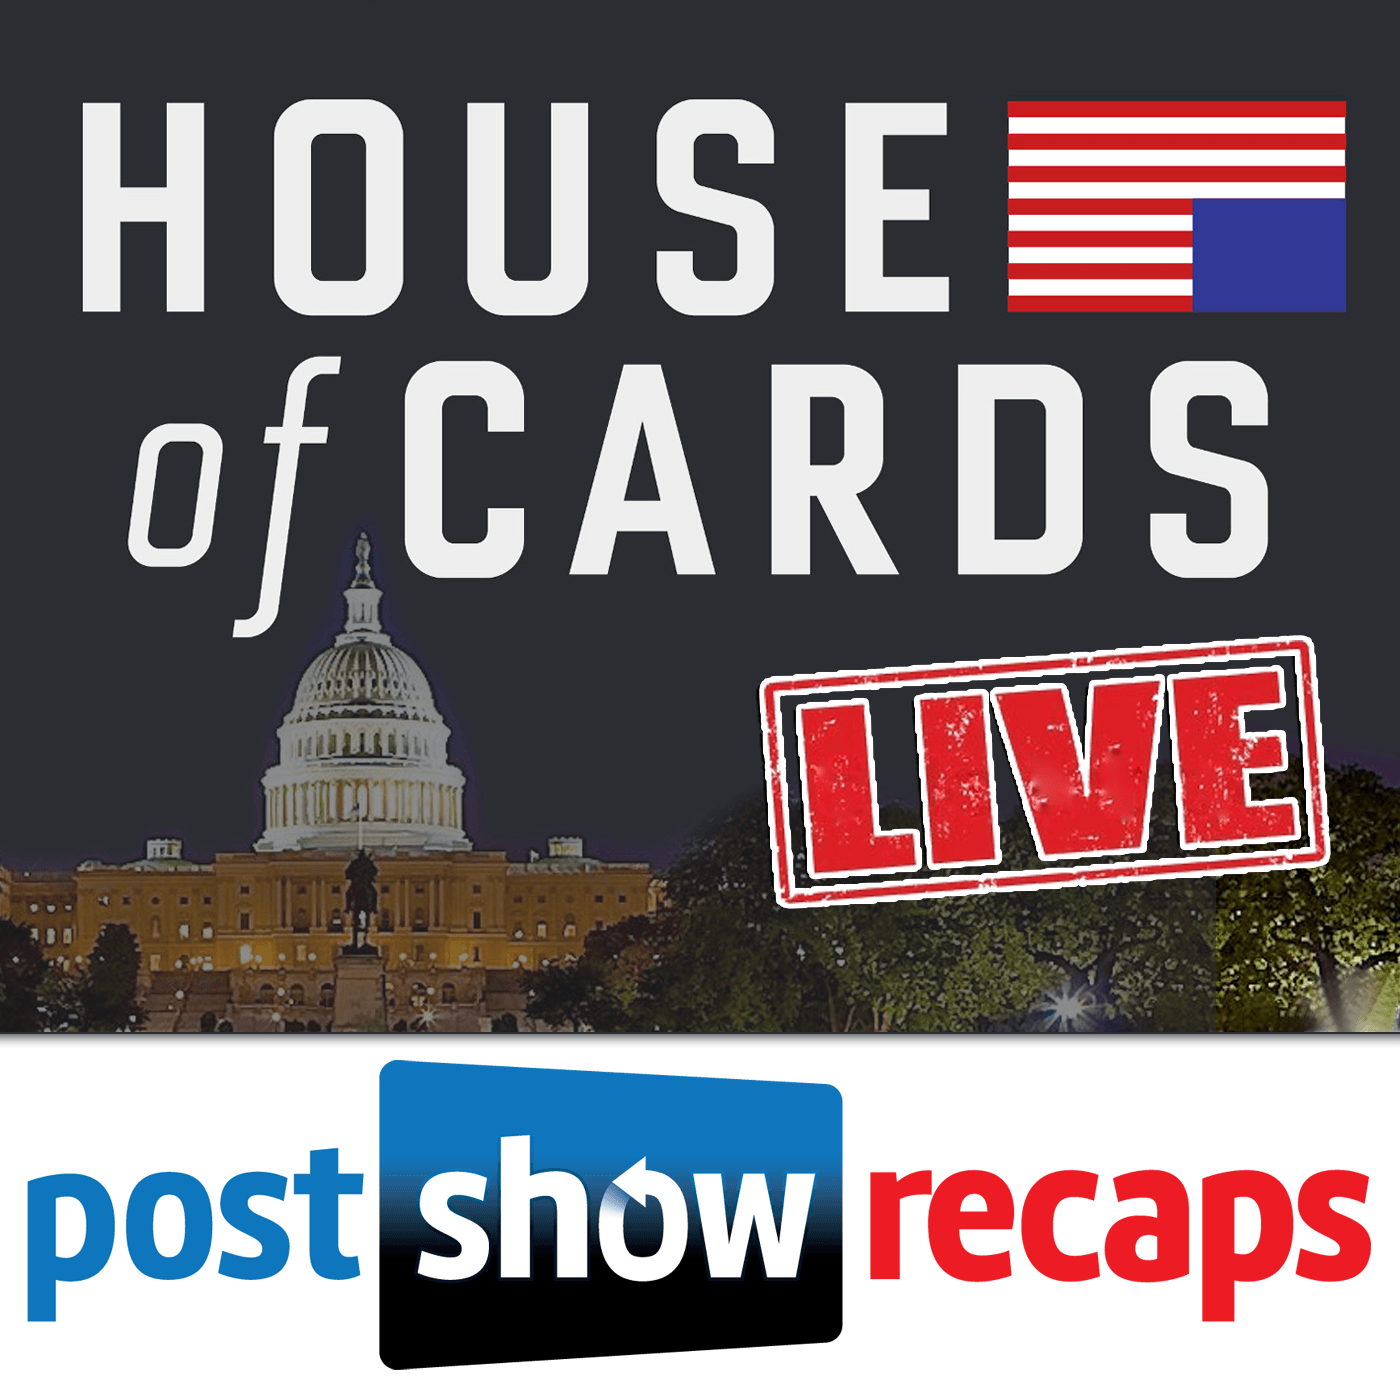 House of Cards LIVE: Post Show Recap of the Netflix Original Series